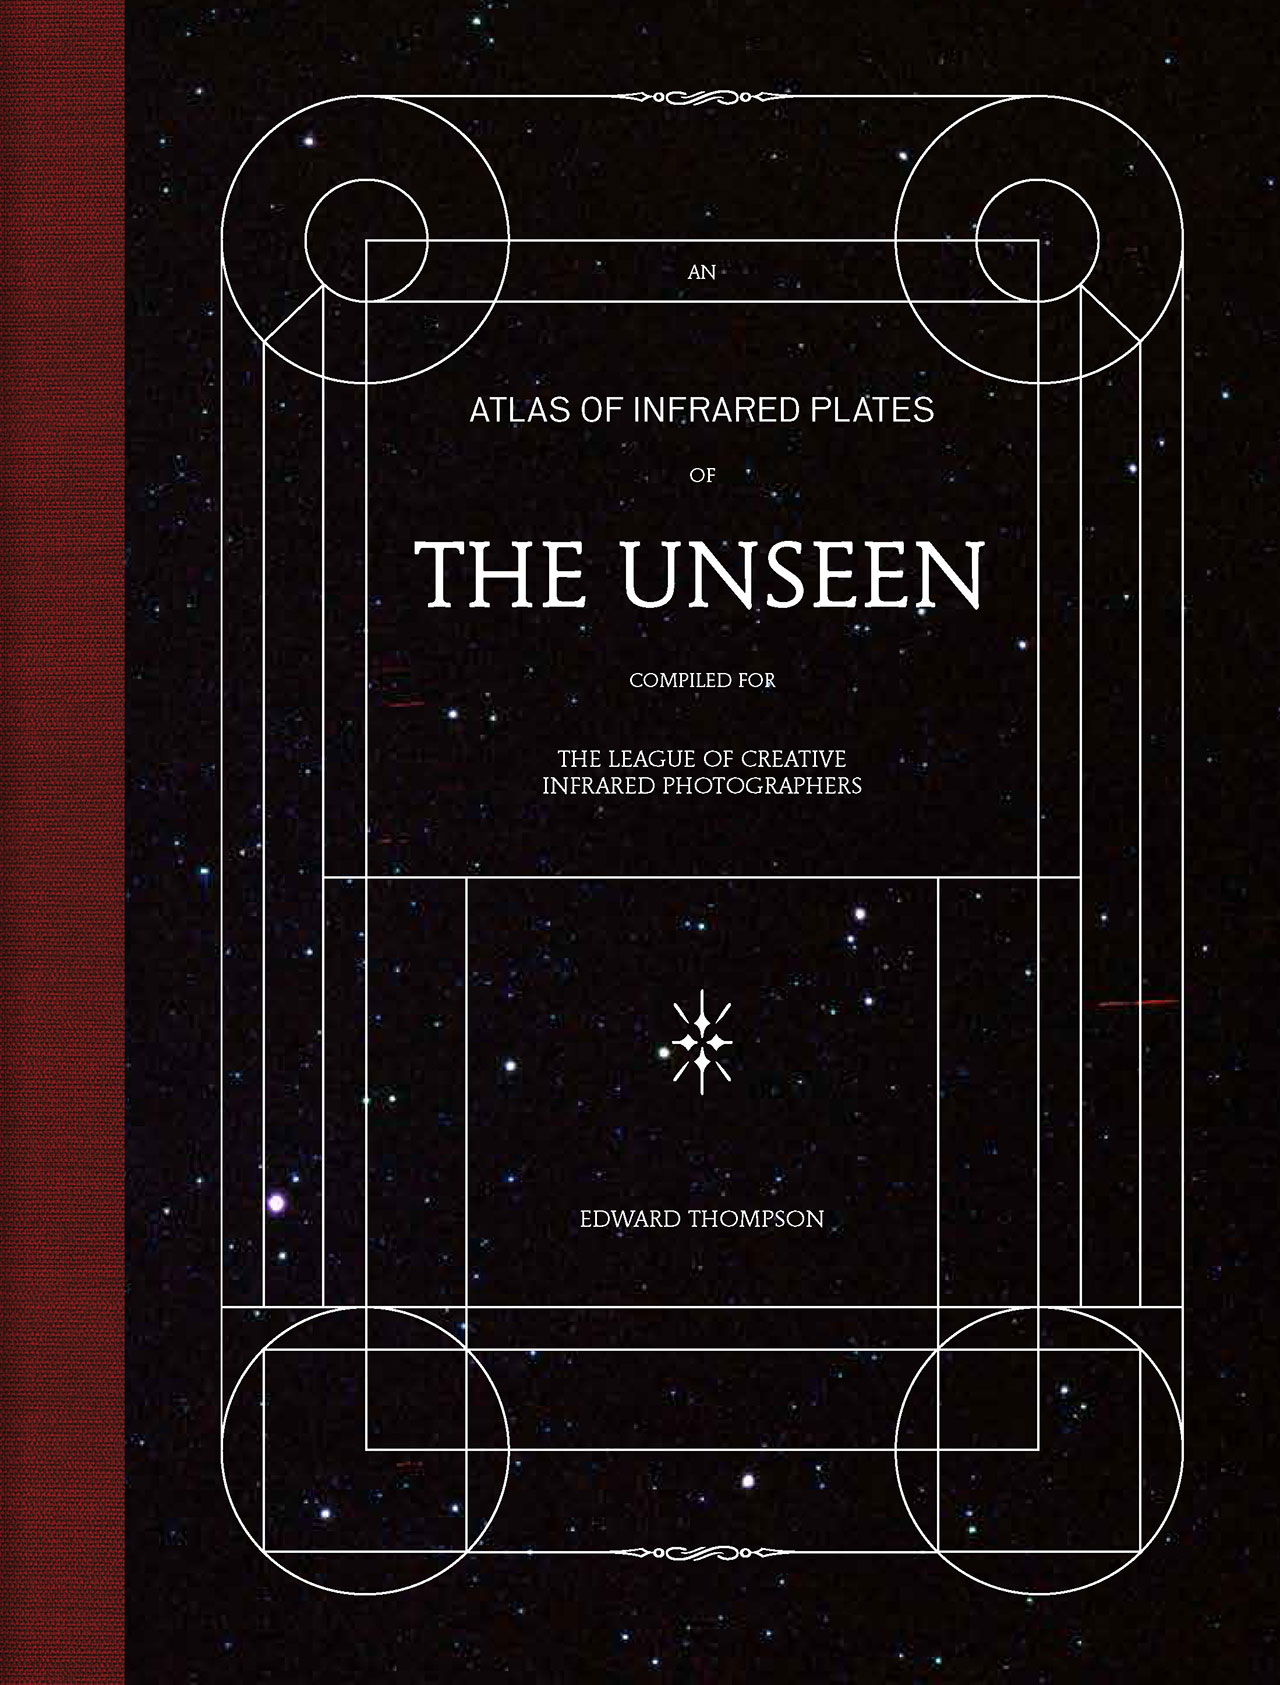 The Unseen – An Atlas of Infrared Plates by Edward Thompson, published by Schilt Publishing. Book cover © Edward Thompson/Schilt Publishing & Gallery.